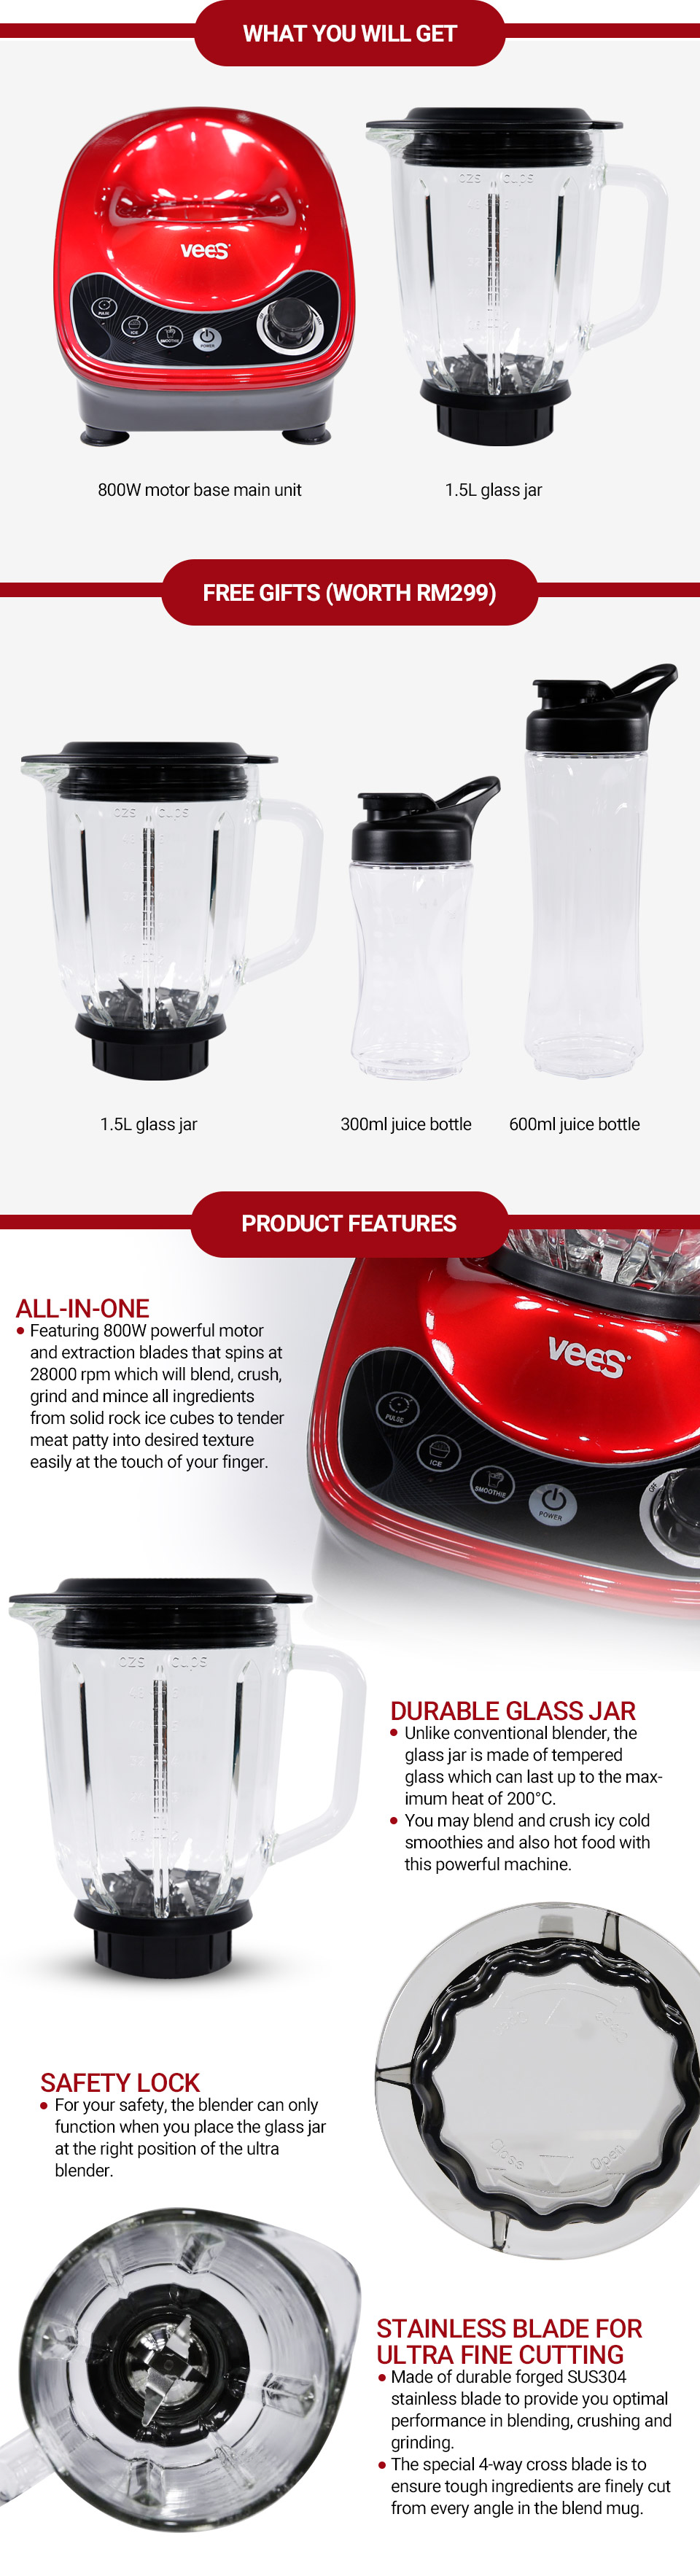 VEES Ultra Blender & Processor